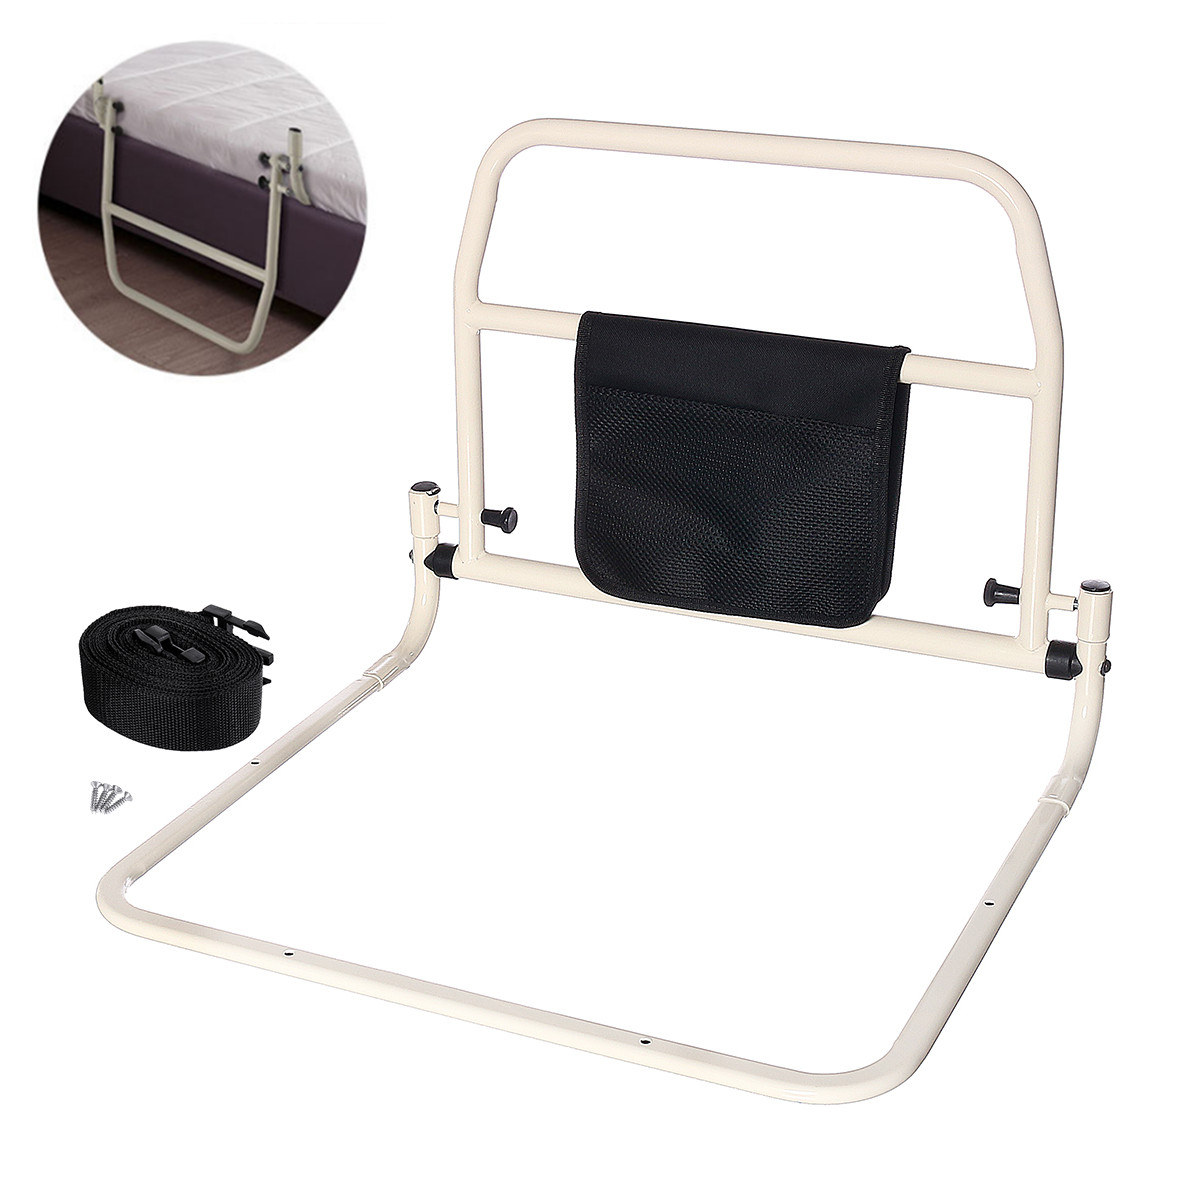 20 Safety Bed Rails For Elderly Adults Seniors Folding